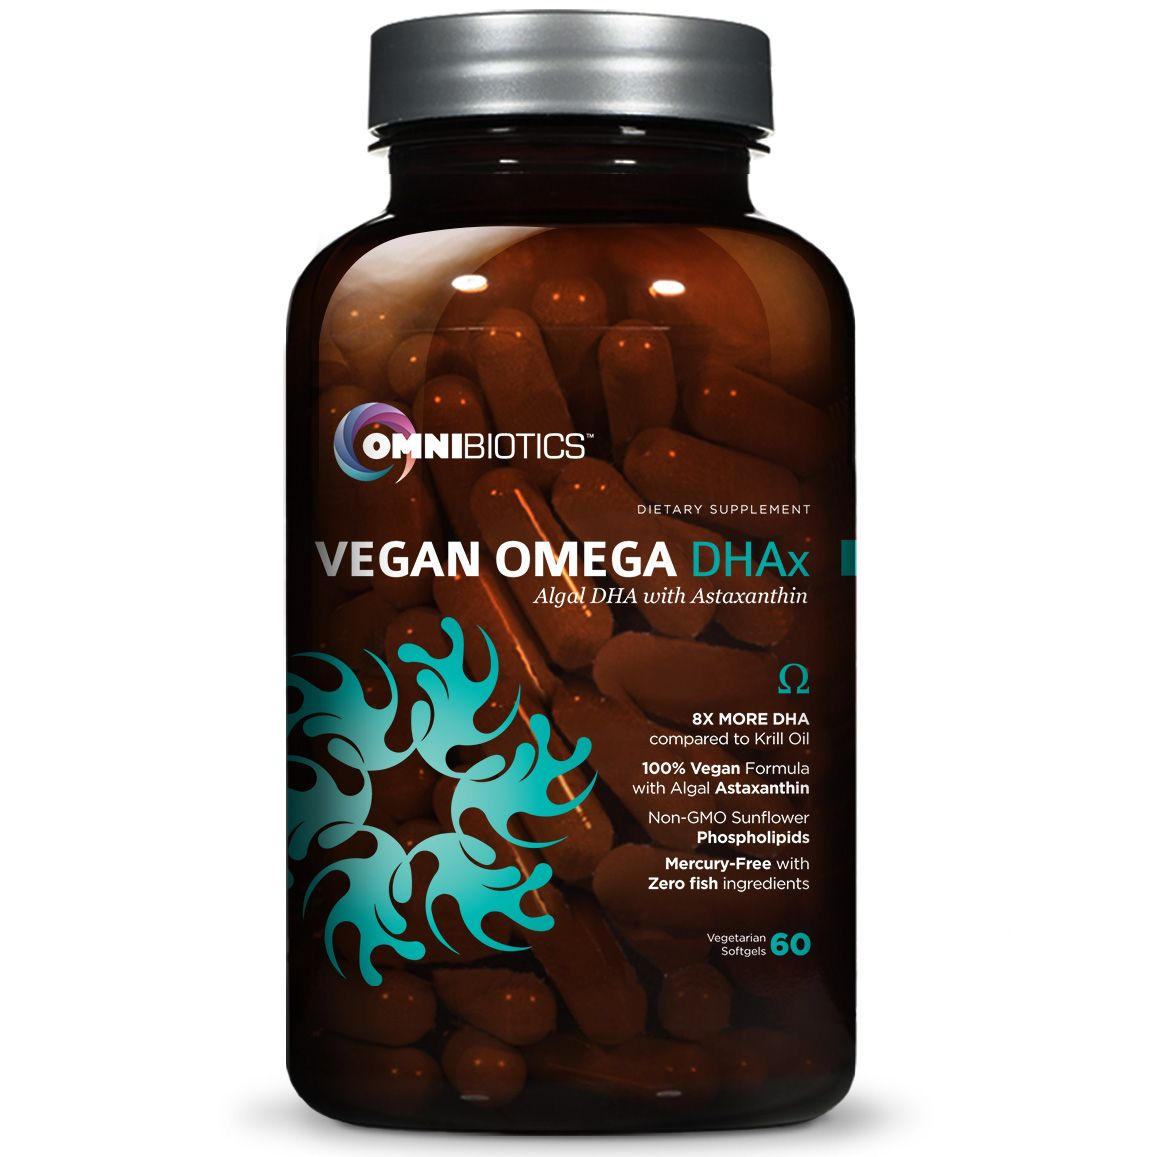 Vegan Omega Dhax 100 Vegan Omega 3 Source With 8x More Dha Than Krill Oil Mercury Free With Zero Fish Ingredients Fish Oils Supplements Dha Supplement Dha